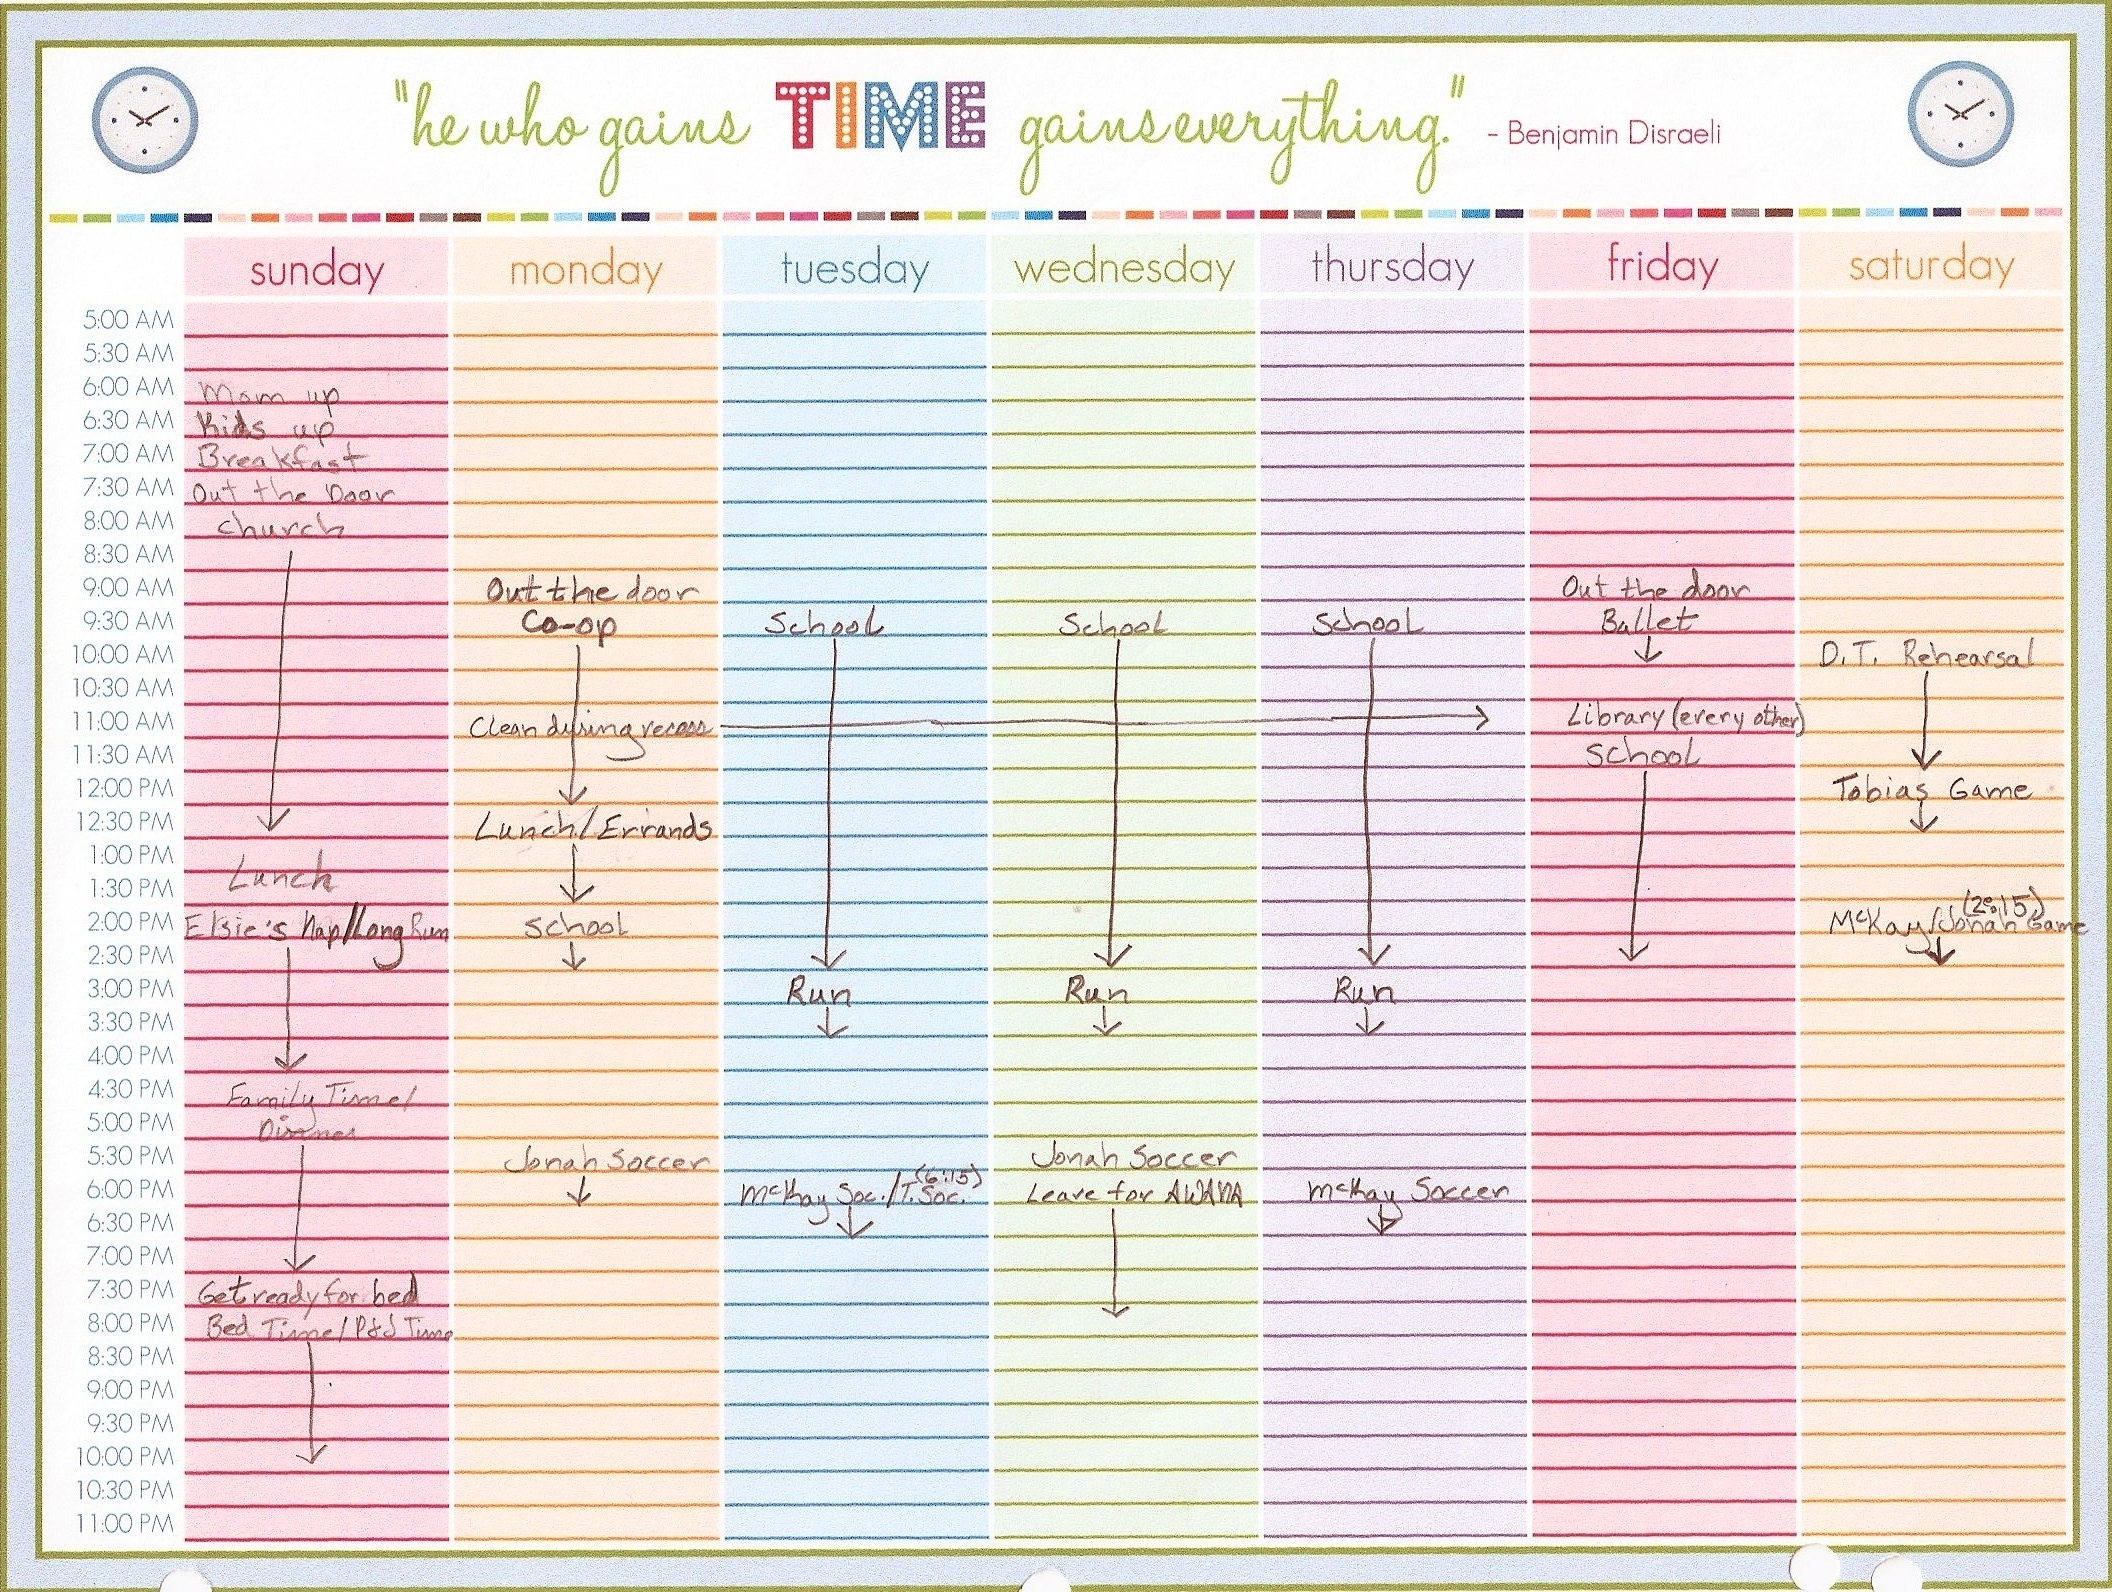 Monthly Calendar With Hourly Time Slots – Yearly Calendar Printable within Month Printable Calendar With Time Slots